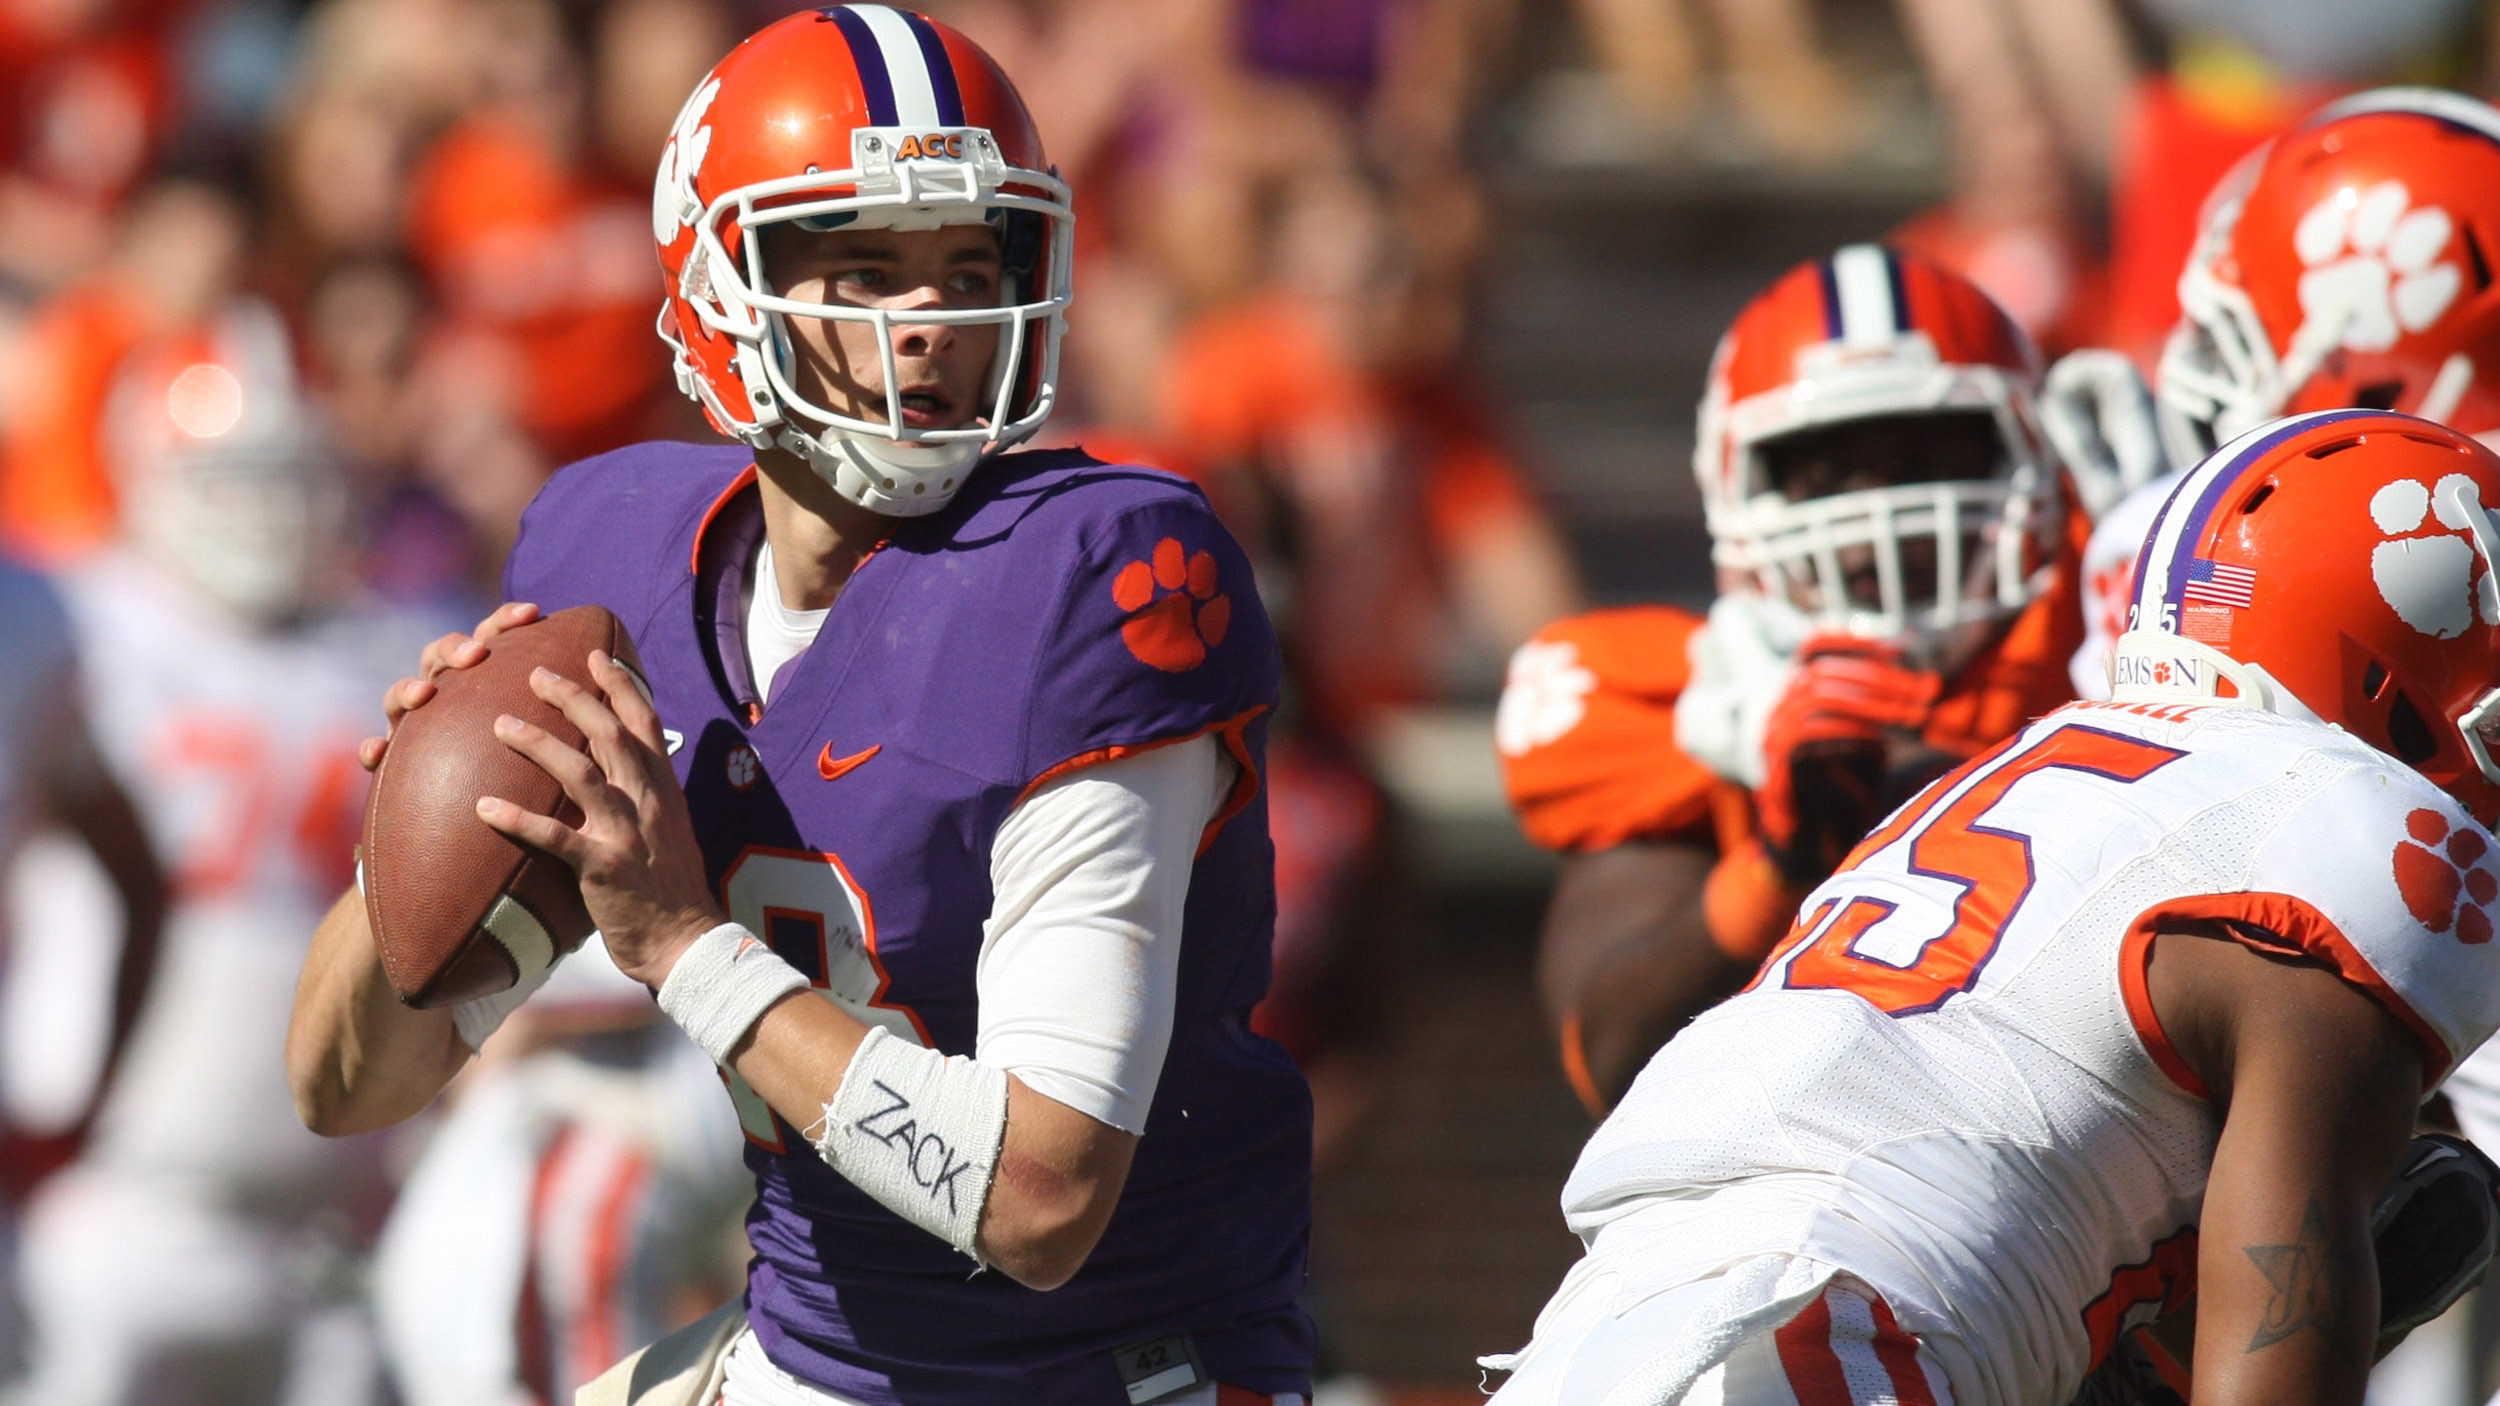 Orange Defeats White 34-26 in Clemson Spring Football Game